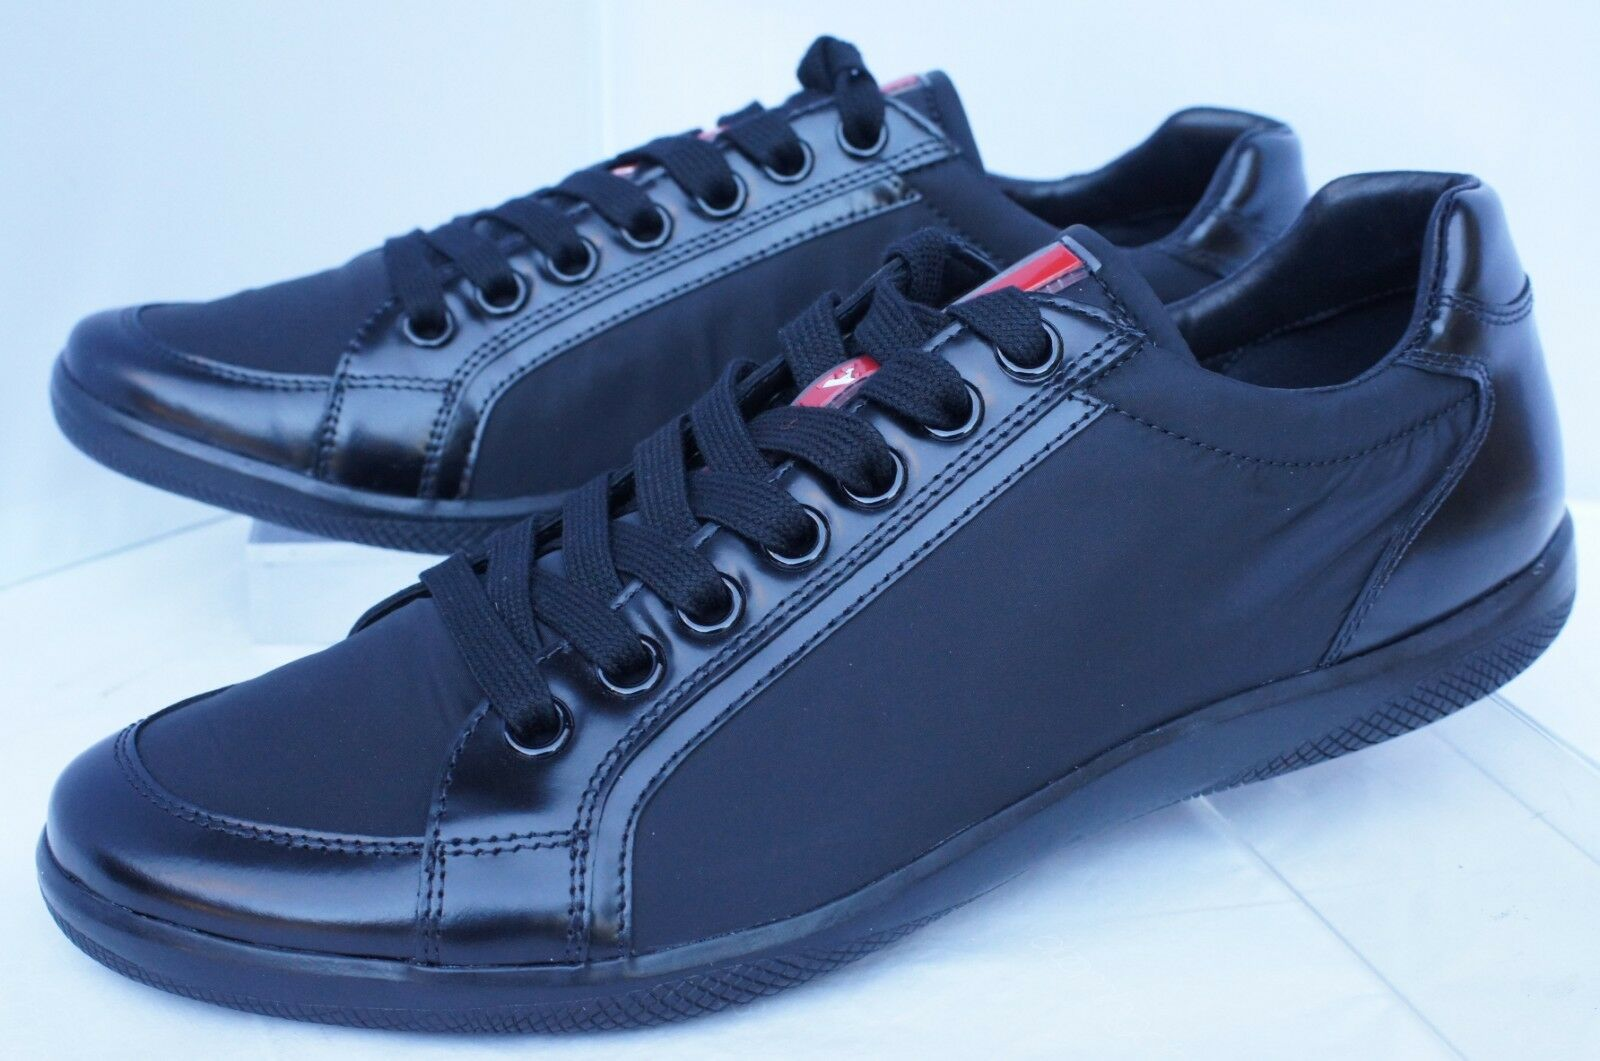 1823fb6c2298 PRADA Mens Tennis Shoes Black SNEAKERS Size 7 Calzature Uomo Lace up for  sale online